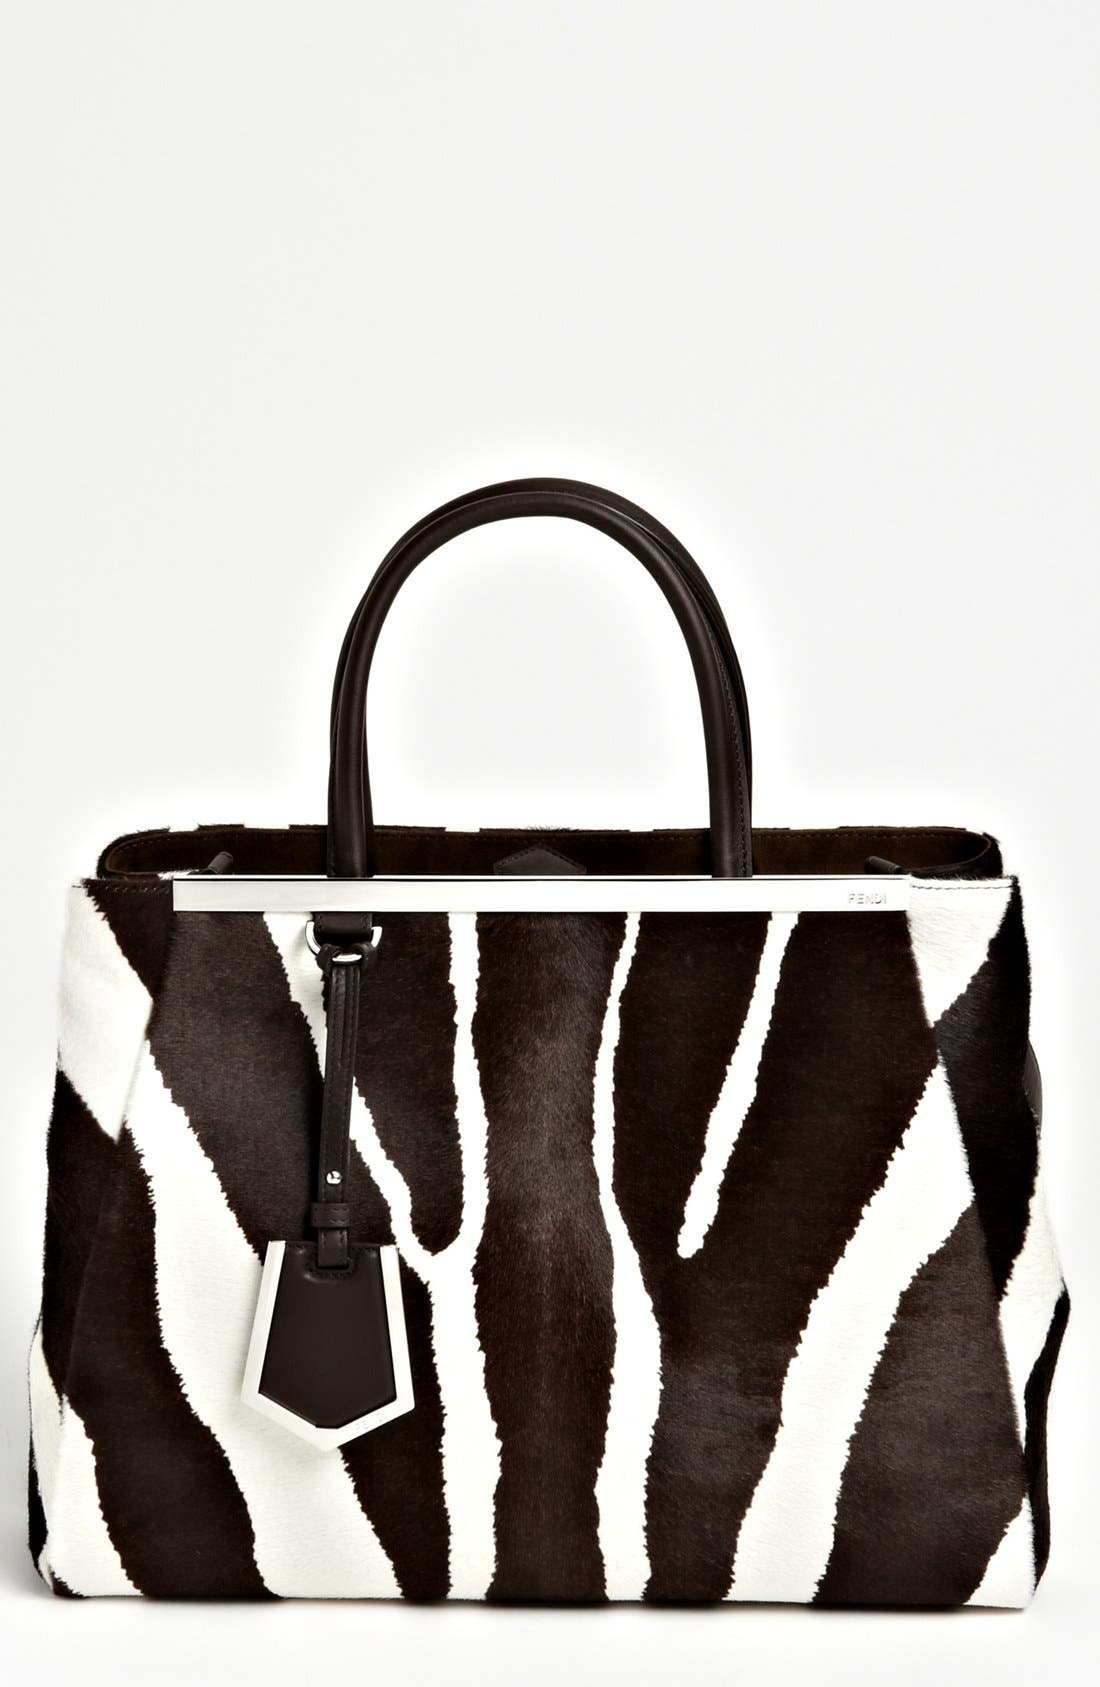 Alternate Image 1 Selected - Fendi '2Jours - Medium' Calf Hair Shopper